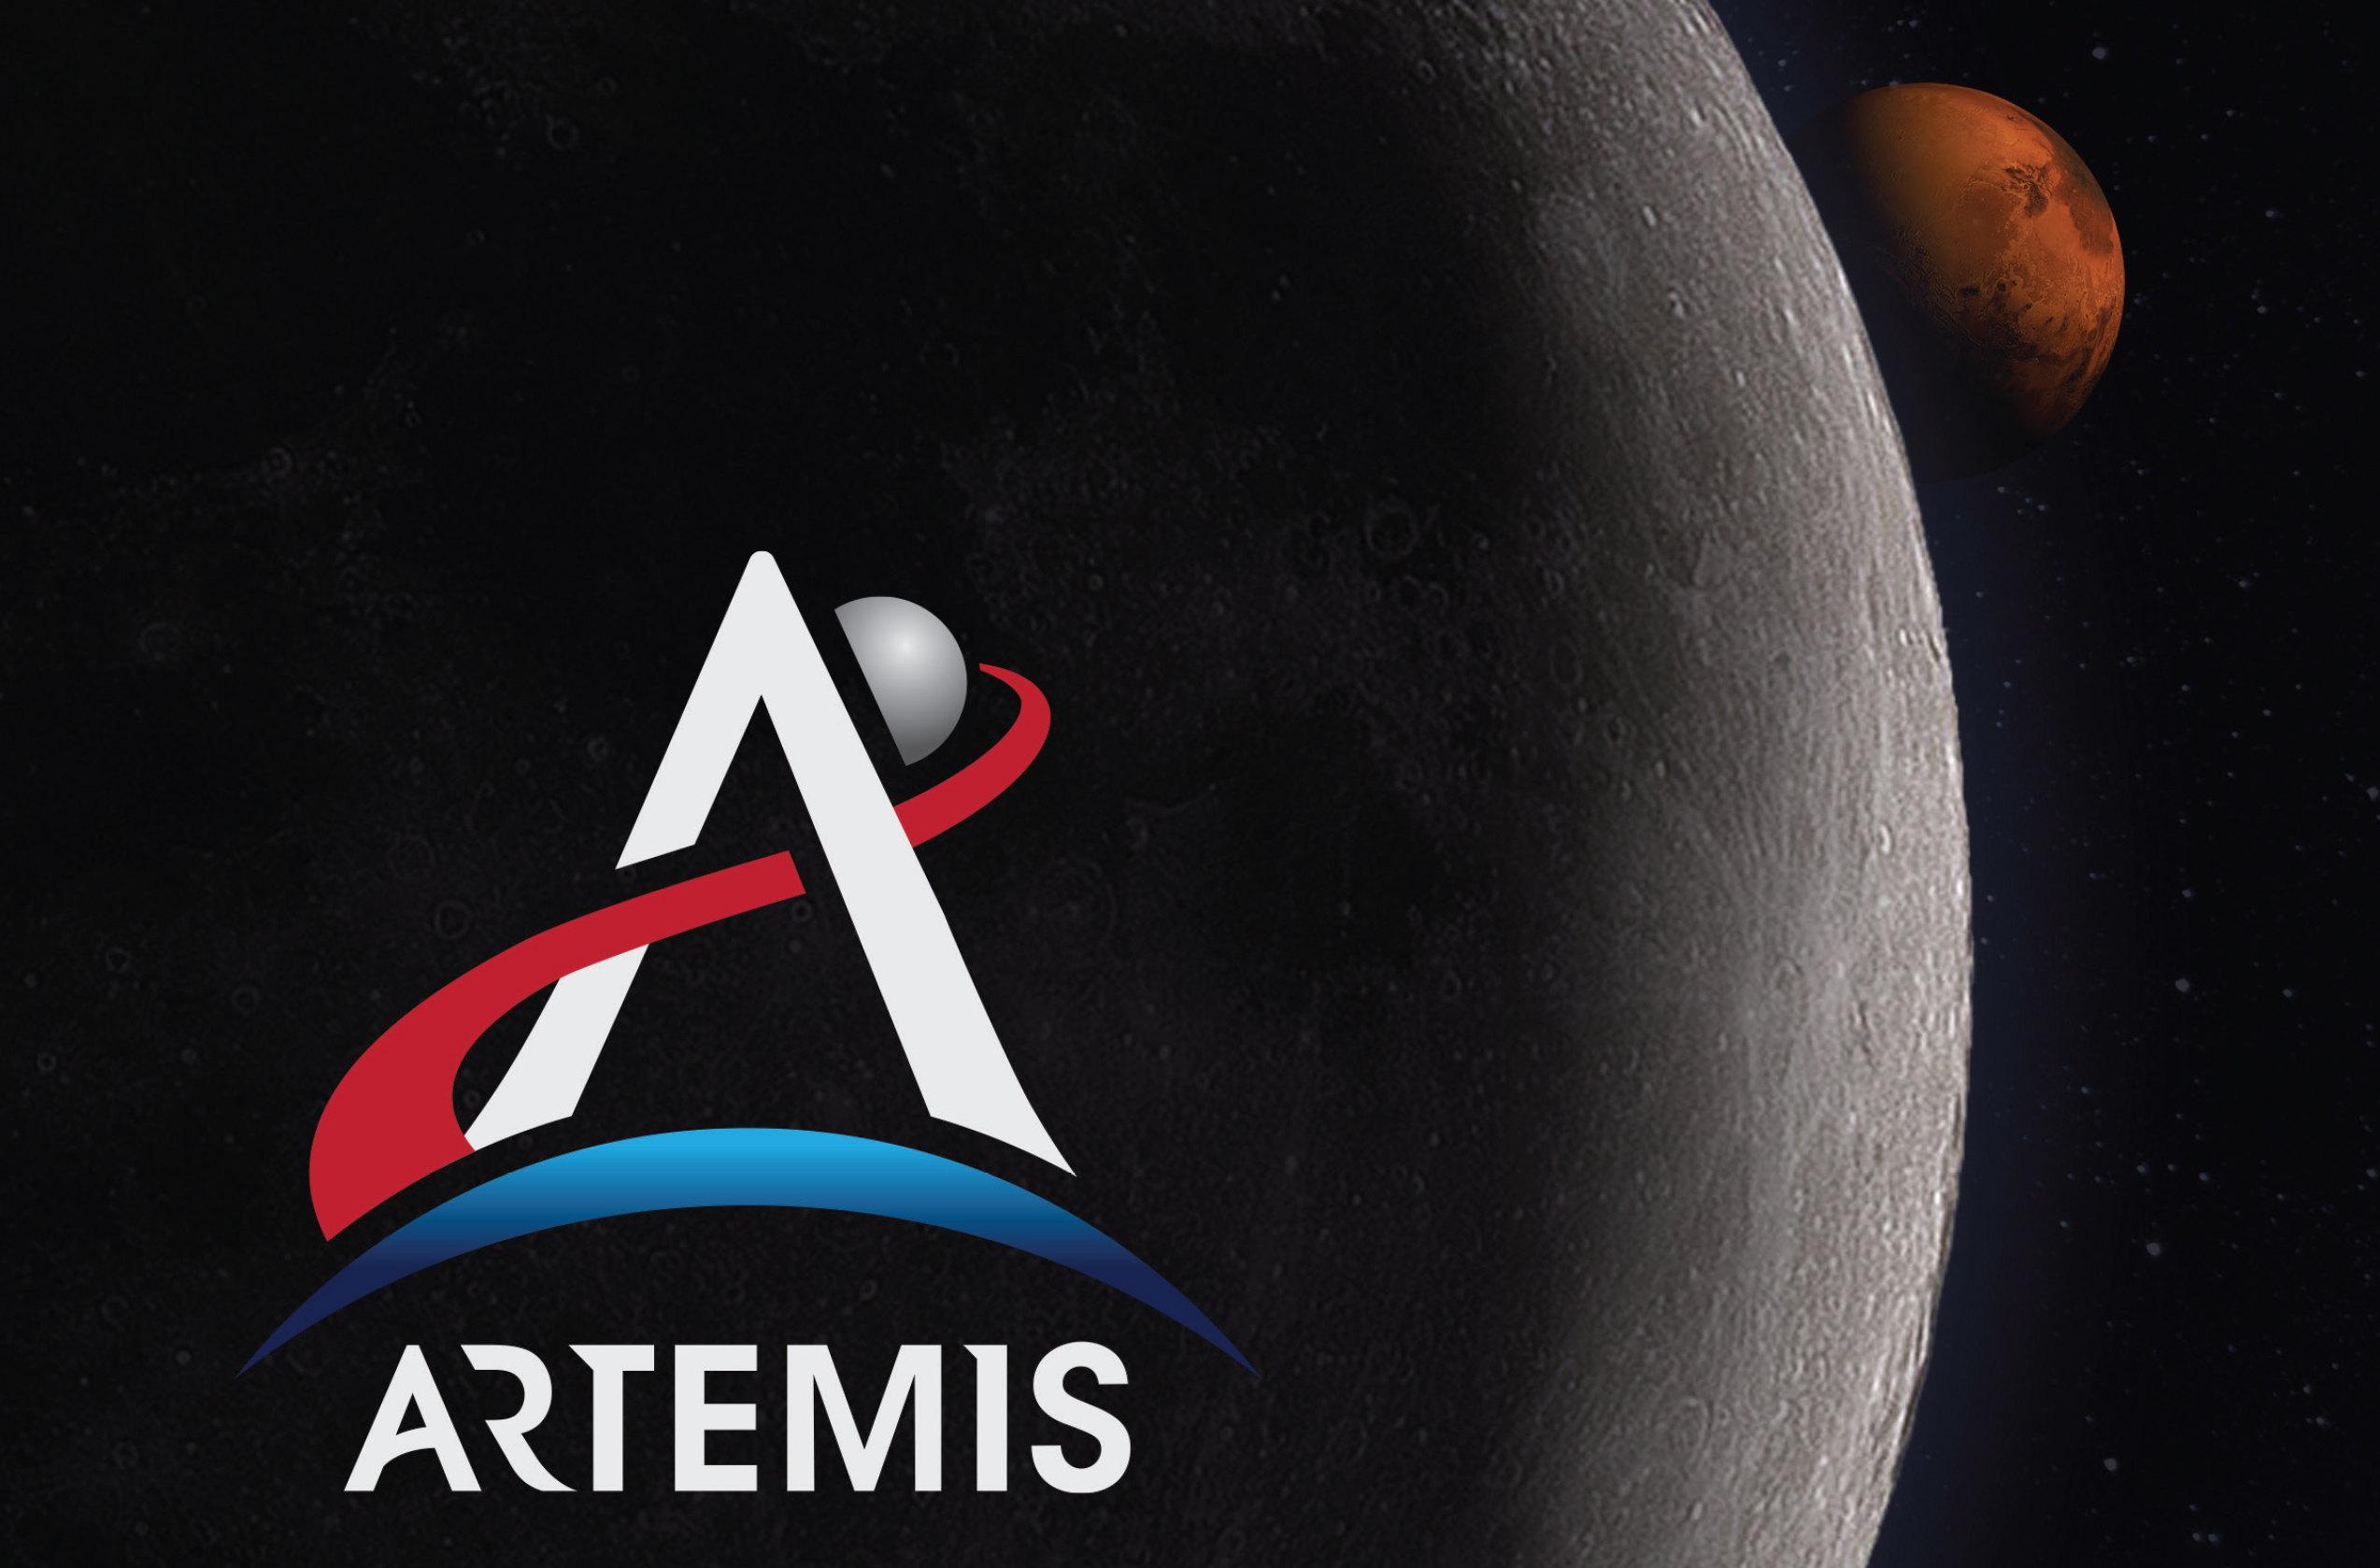 NASA_artemis_Smartphonegreece (1)